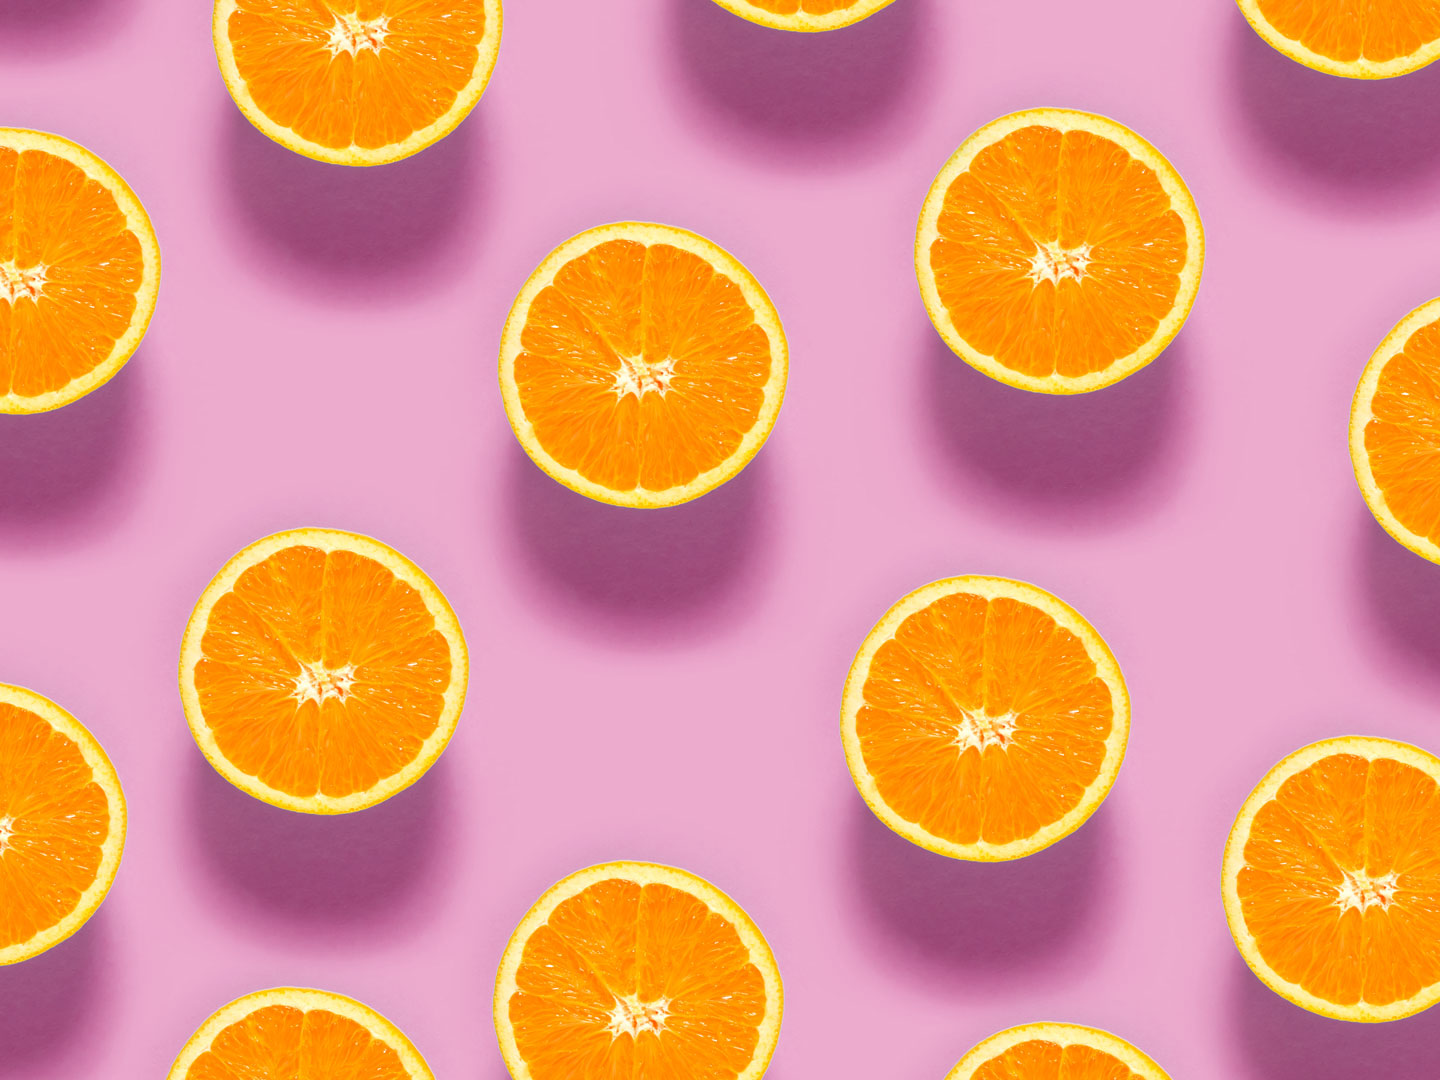 Vitamin C Benefits for Skin